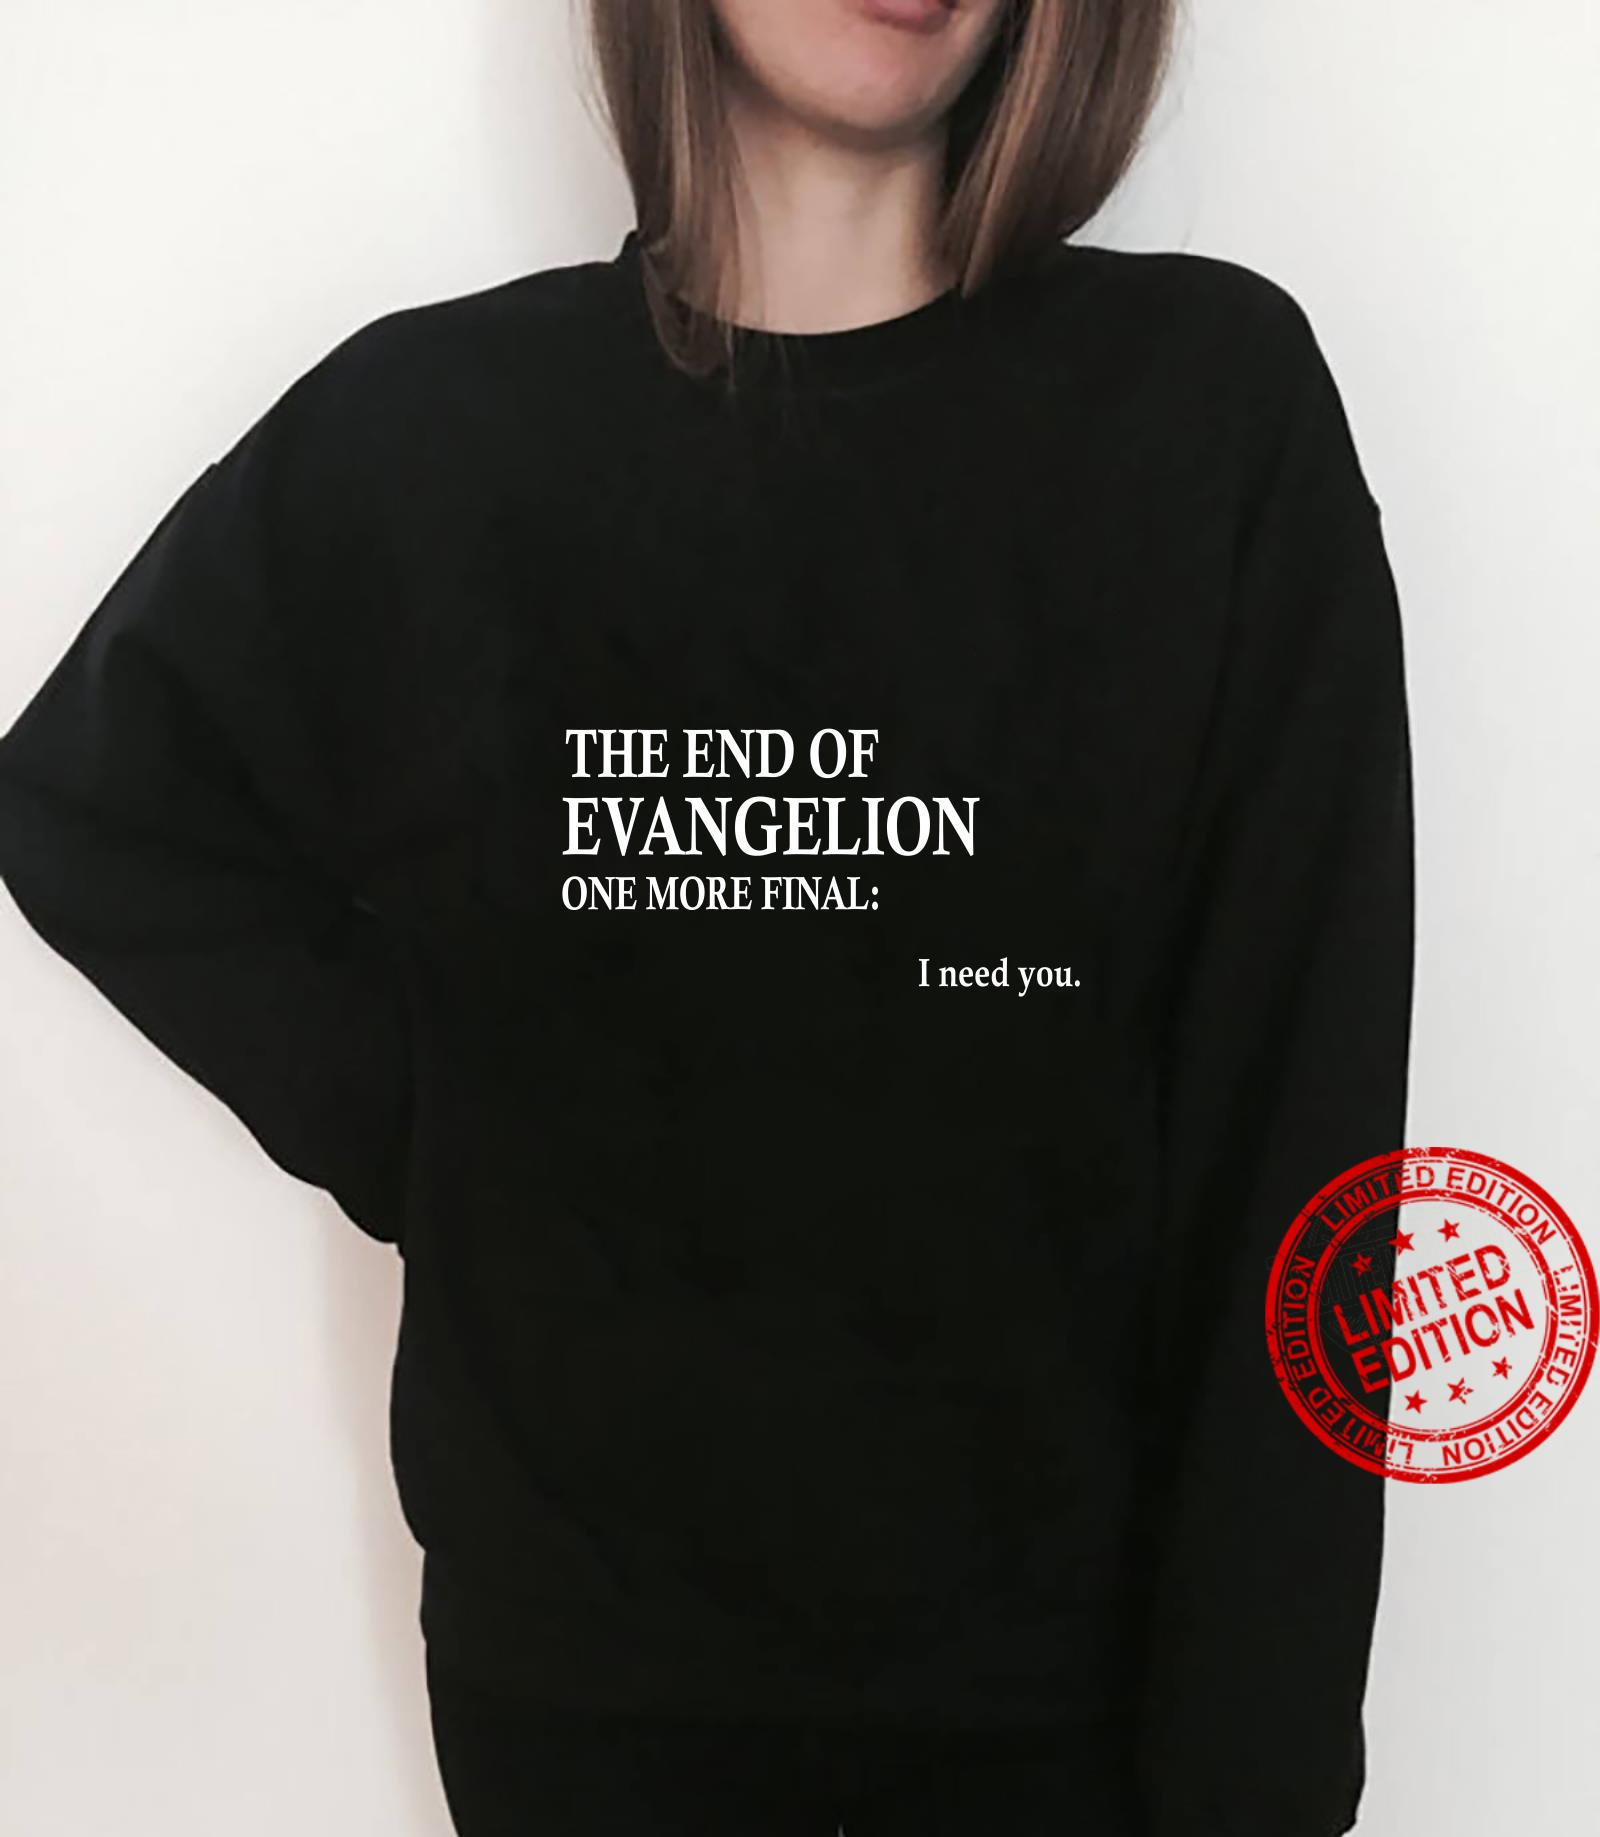 The end of evangelion one more final I need you shirt sweater